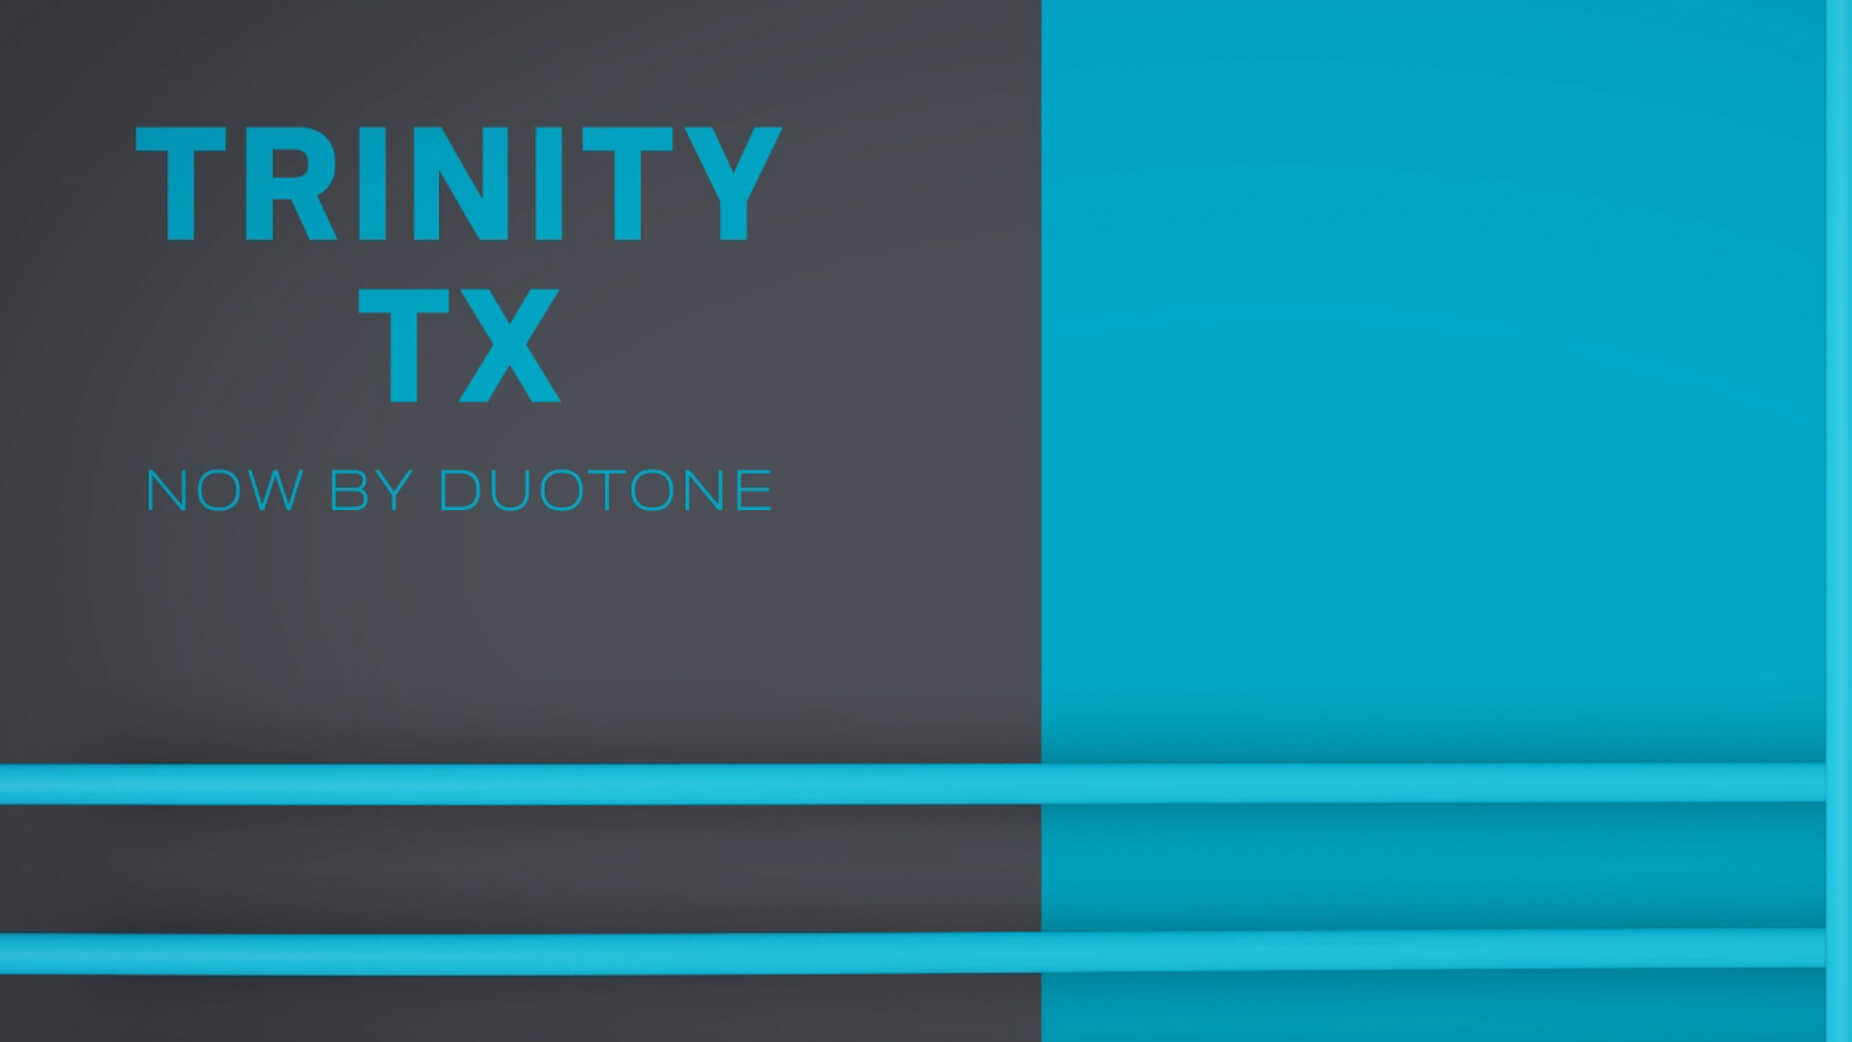 Duotone Trinity TX Video Overview 03